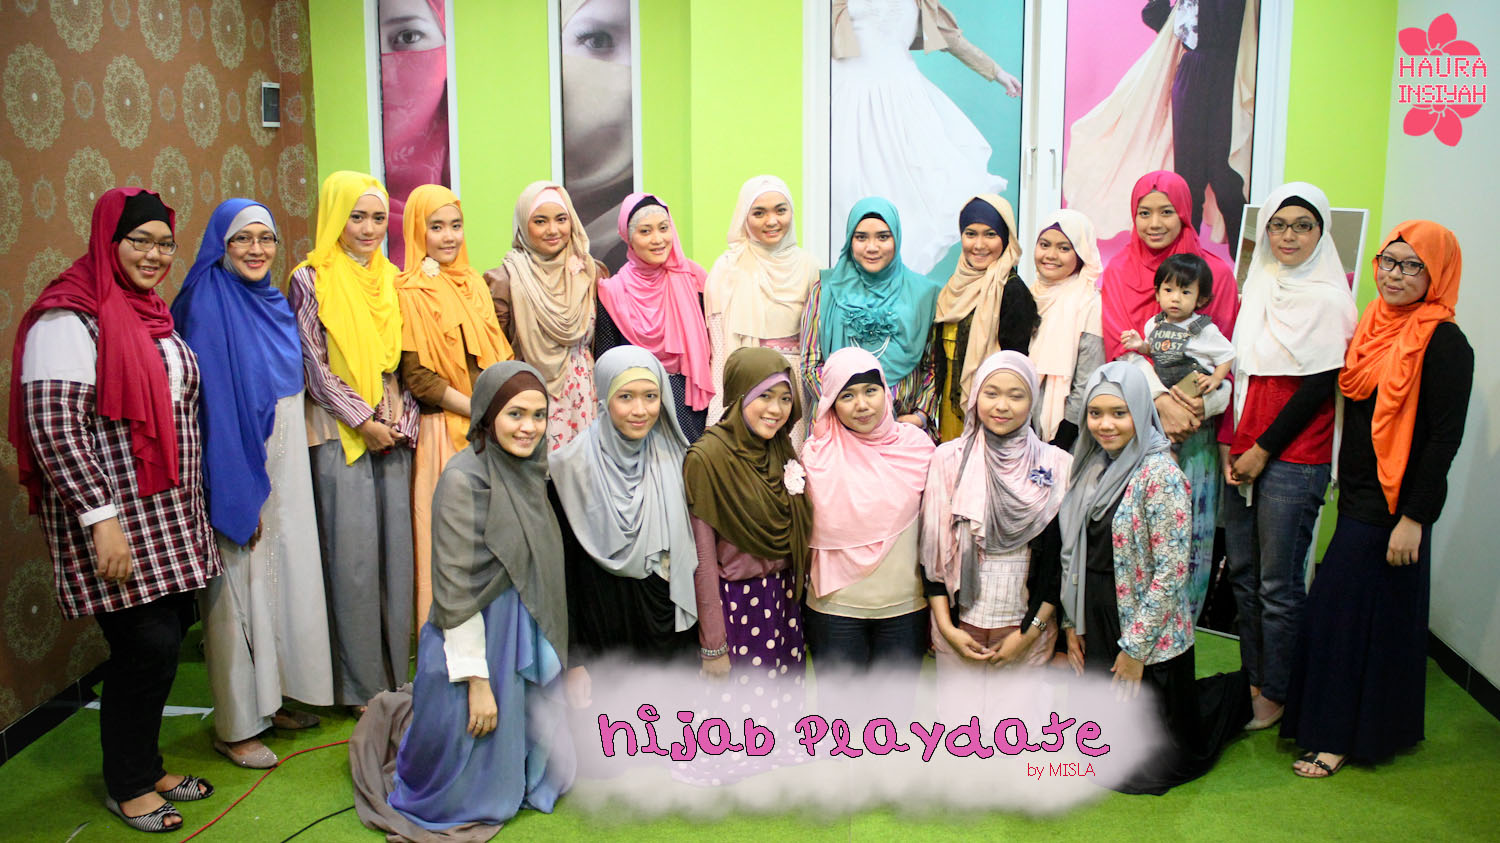 playdate-247-of-269-copy We Had Fun at Hijab Playdate!